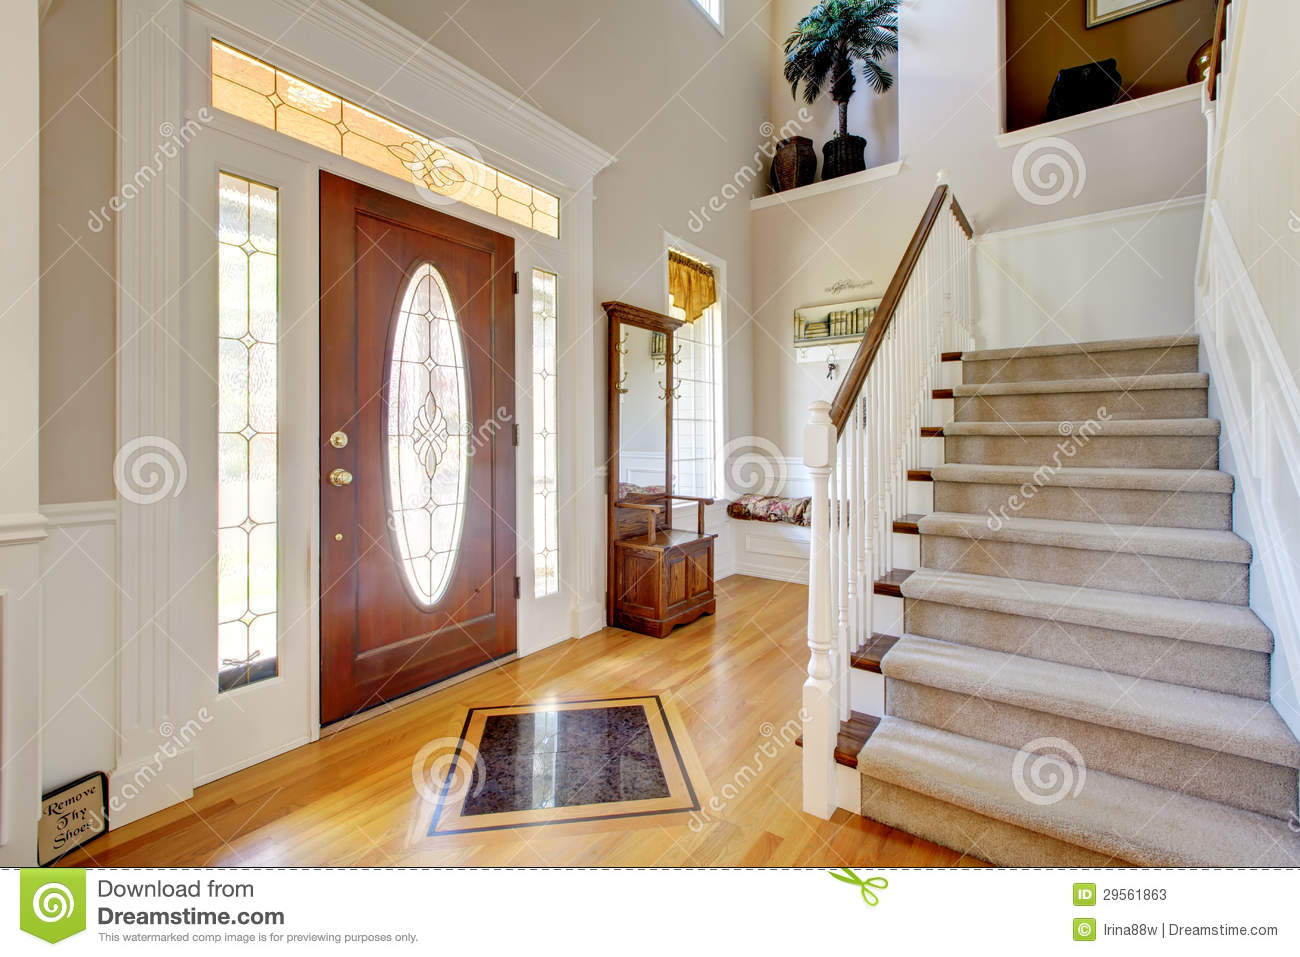 Classic american home entrance interior with staircase for House entrance designs interior